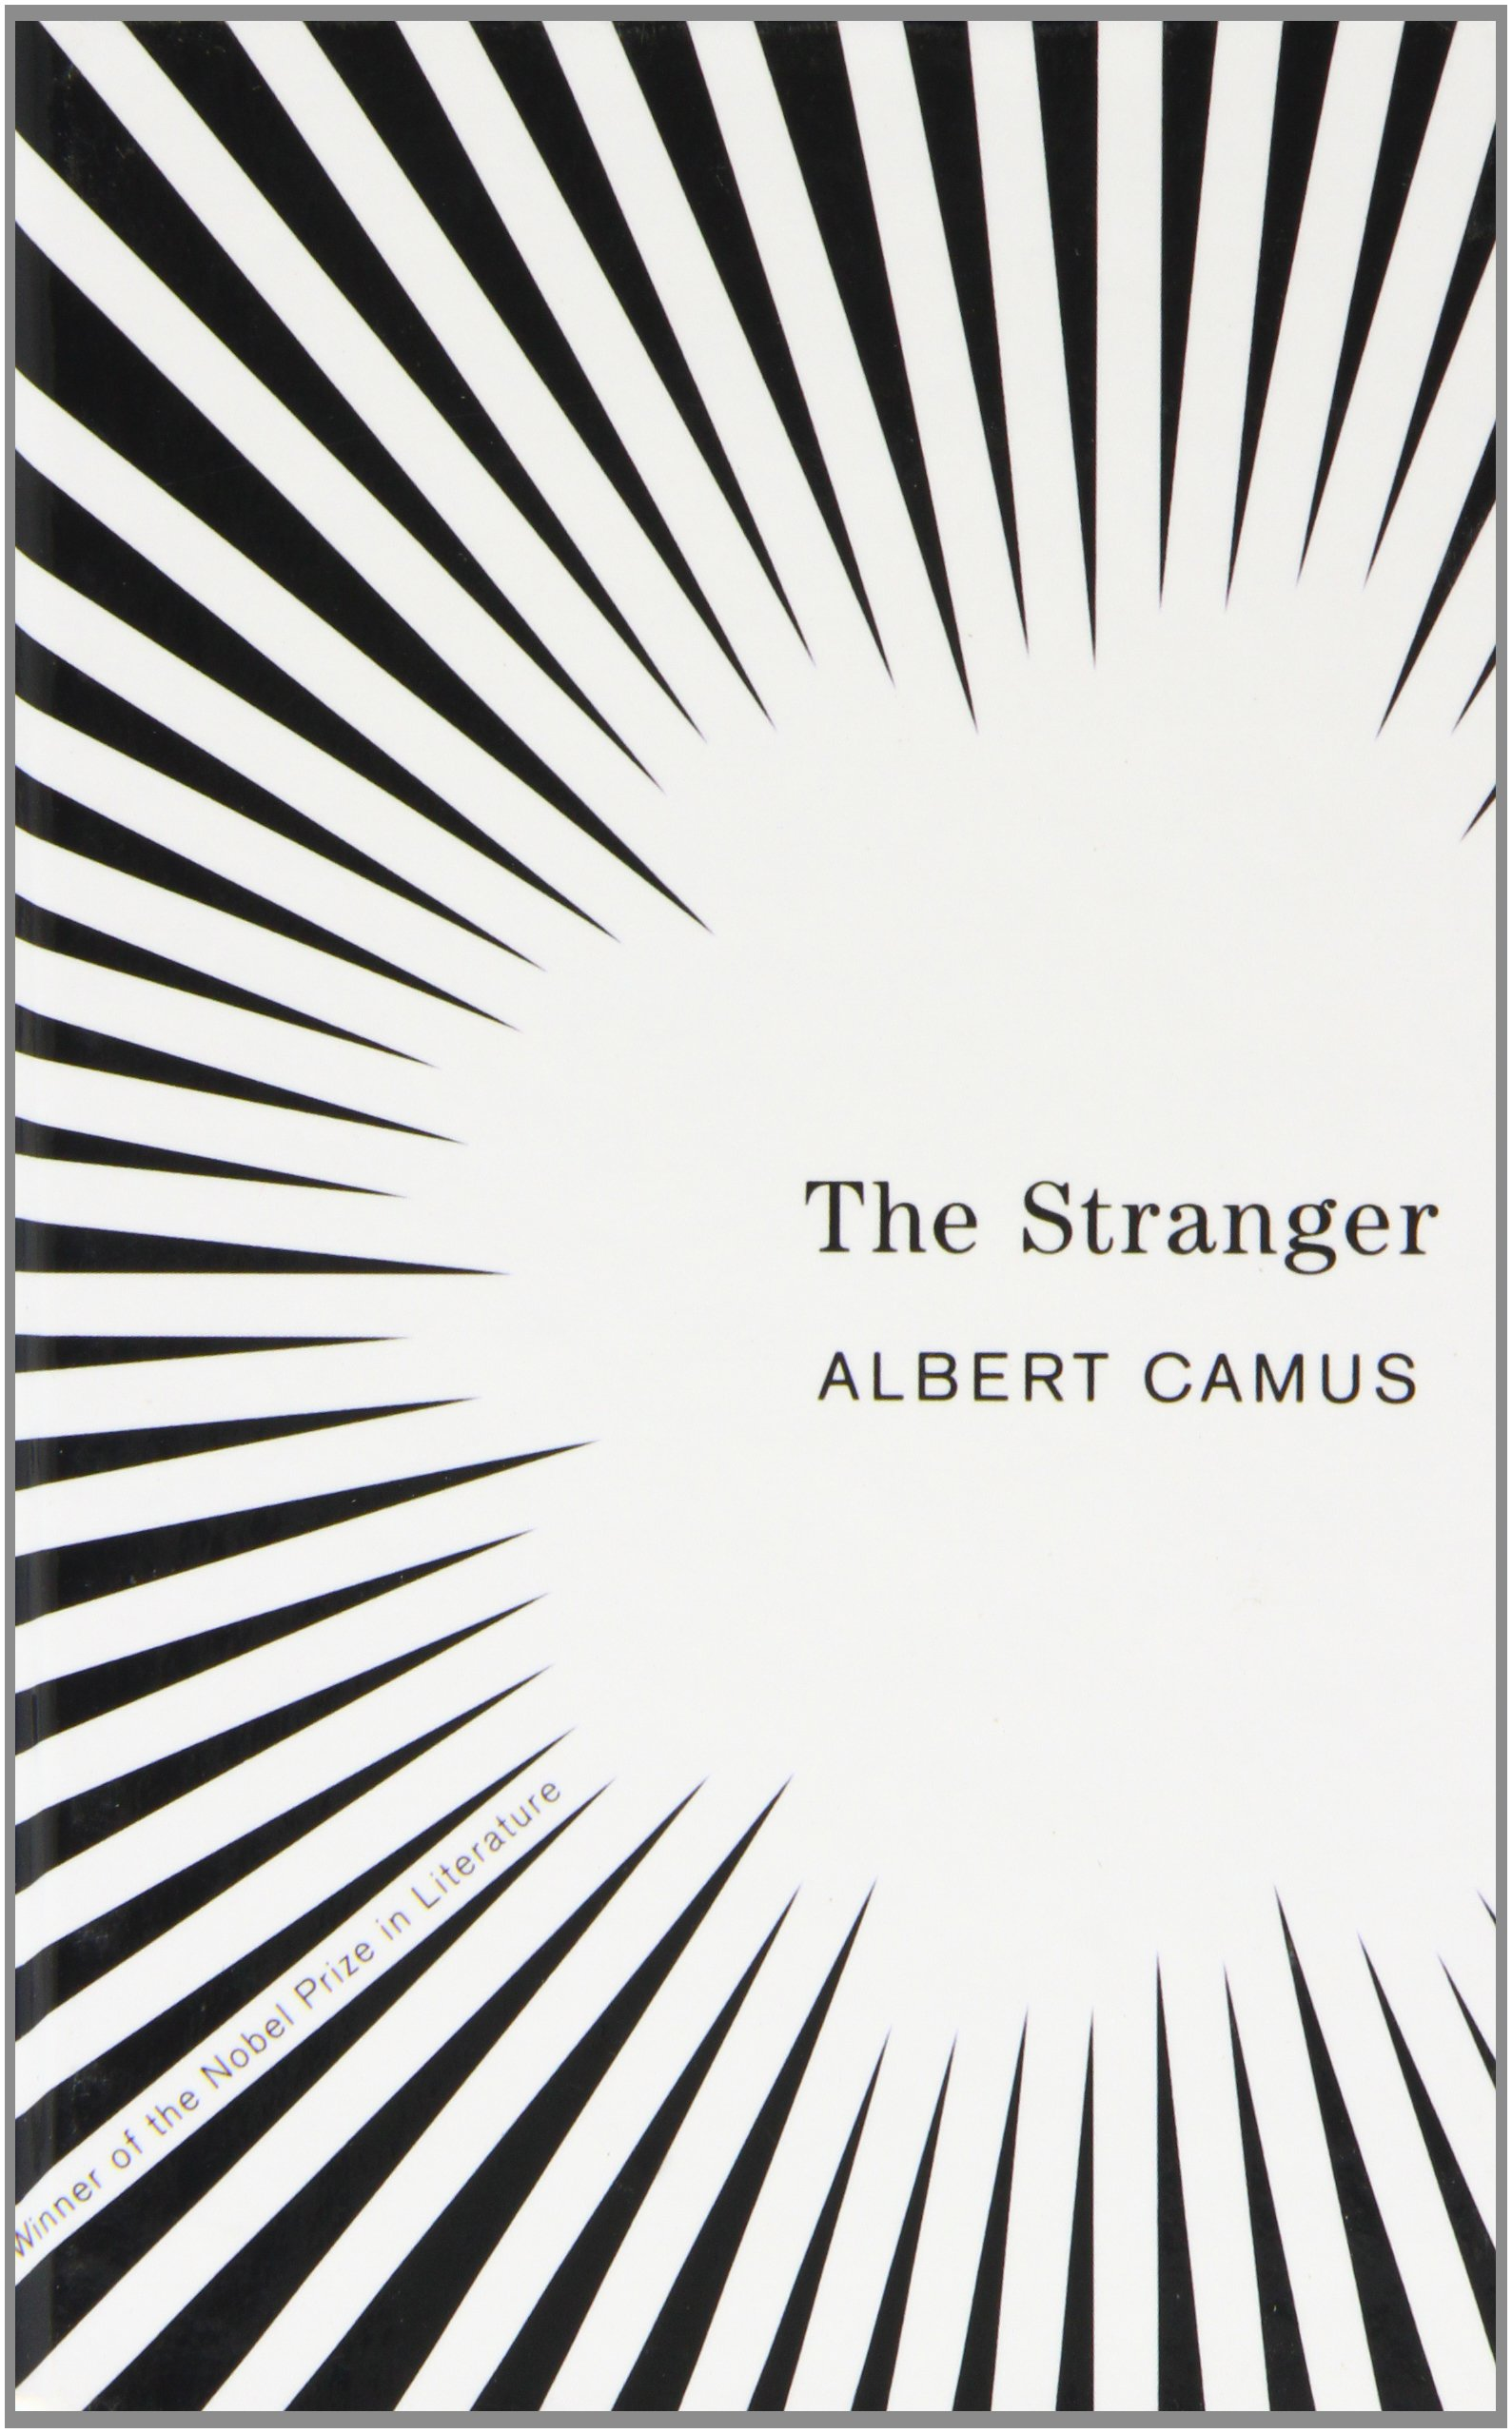 the stranger albert camus matthew ward 9781439570999 the stranger albert camus matthew ward 9781439570999 literature